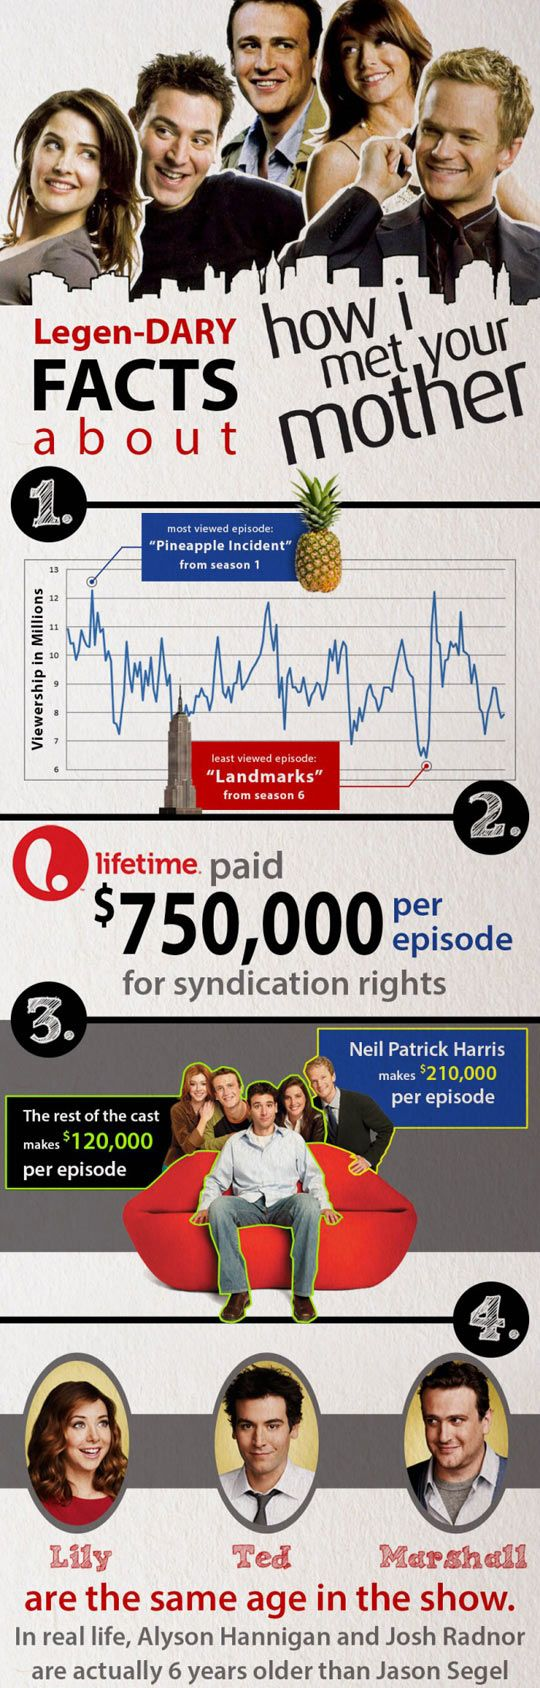 Cool facts about How I Met Your Mother...